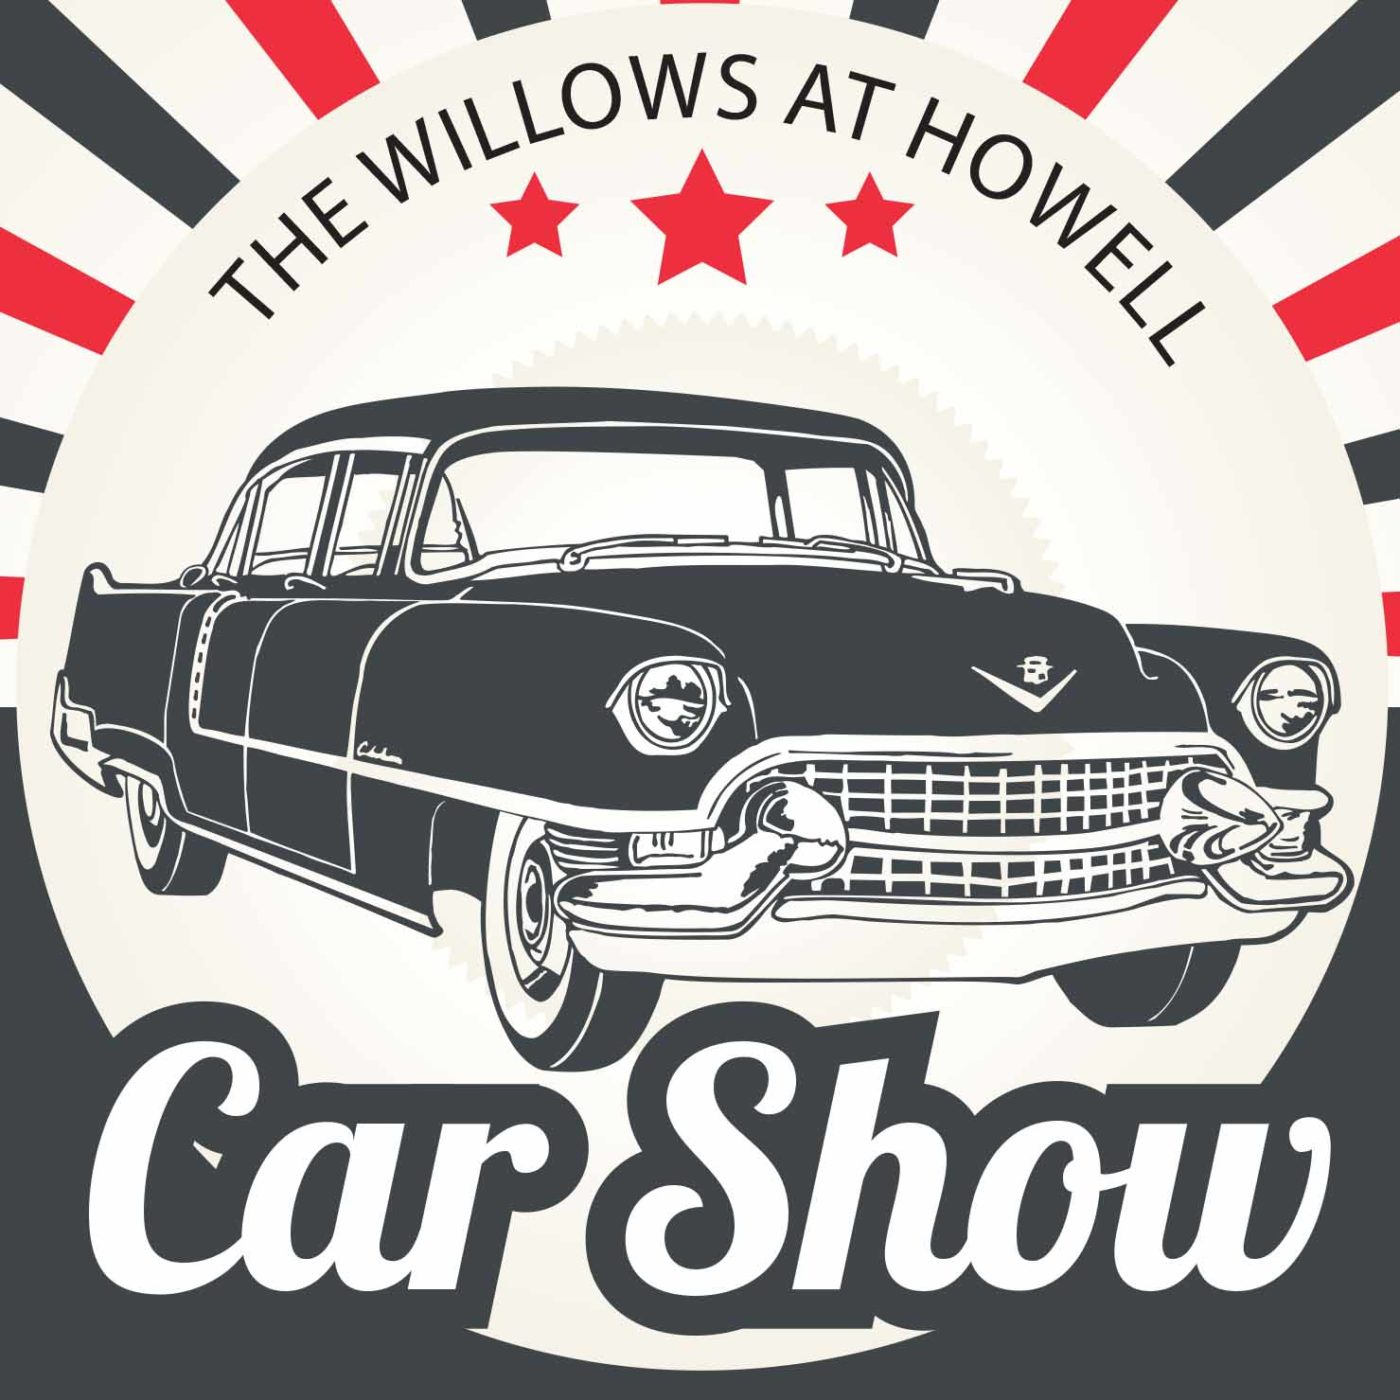 The Willows Car Show Icon